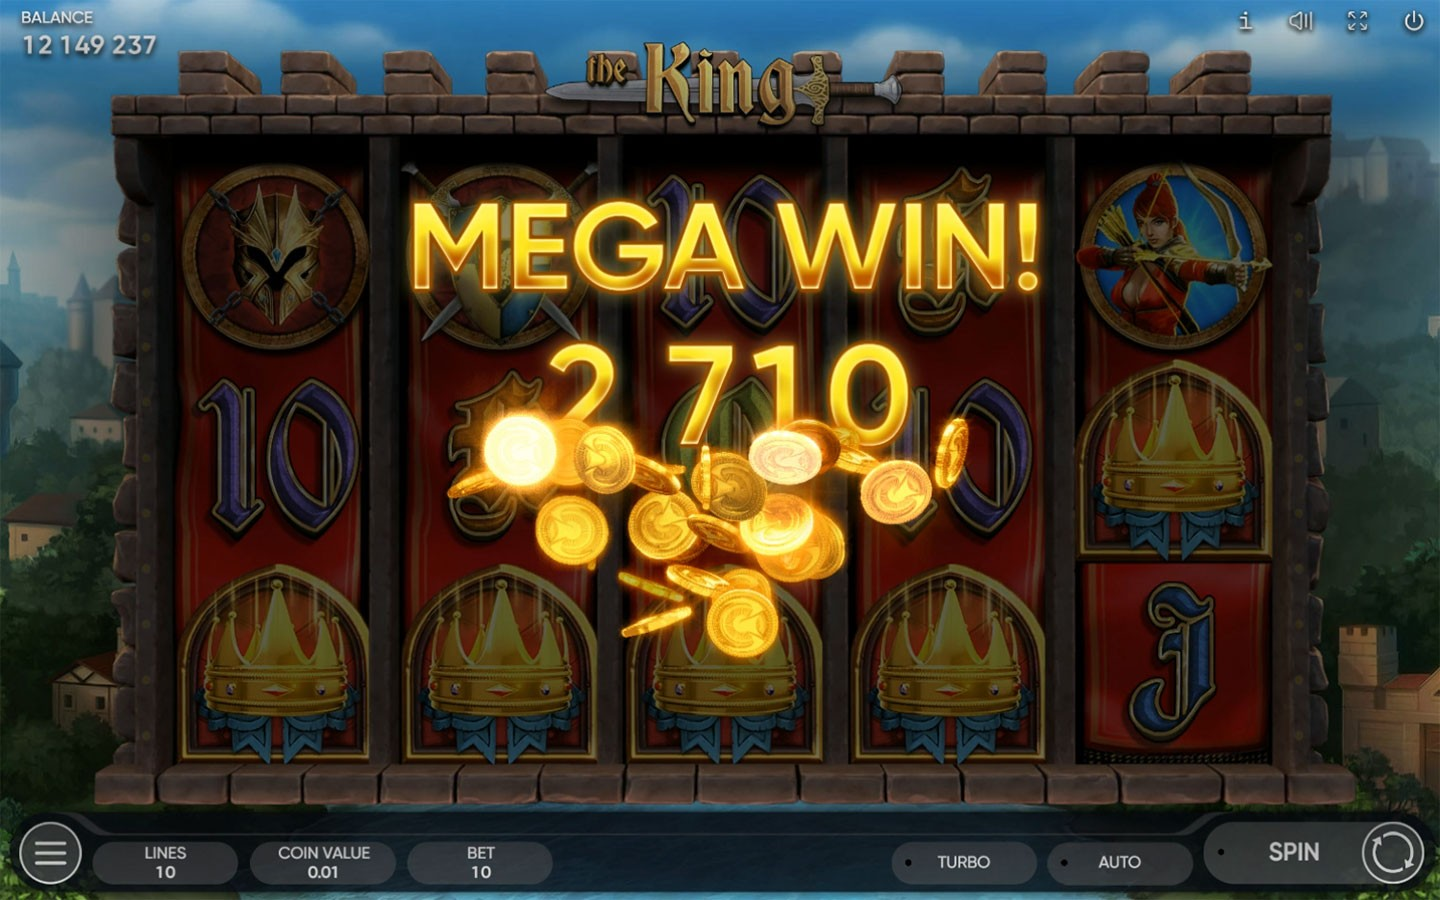 BEST ADVENTURE SLOTS | Try THE KING SLOT